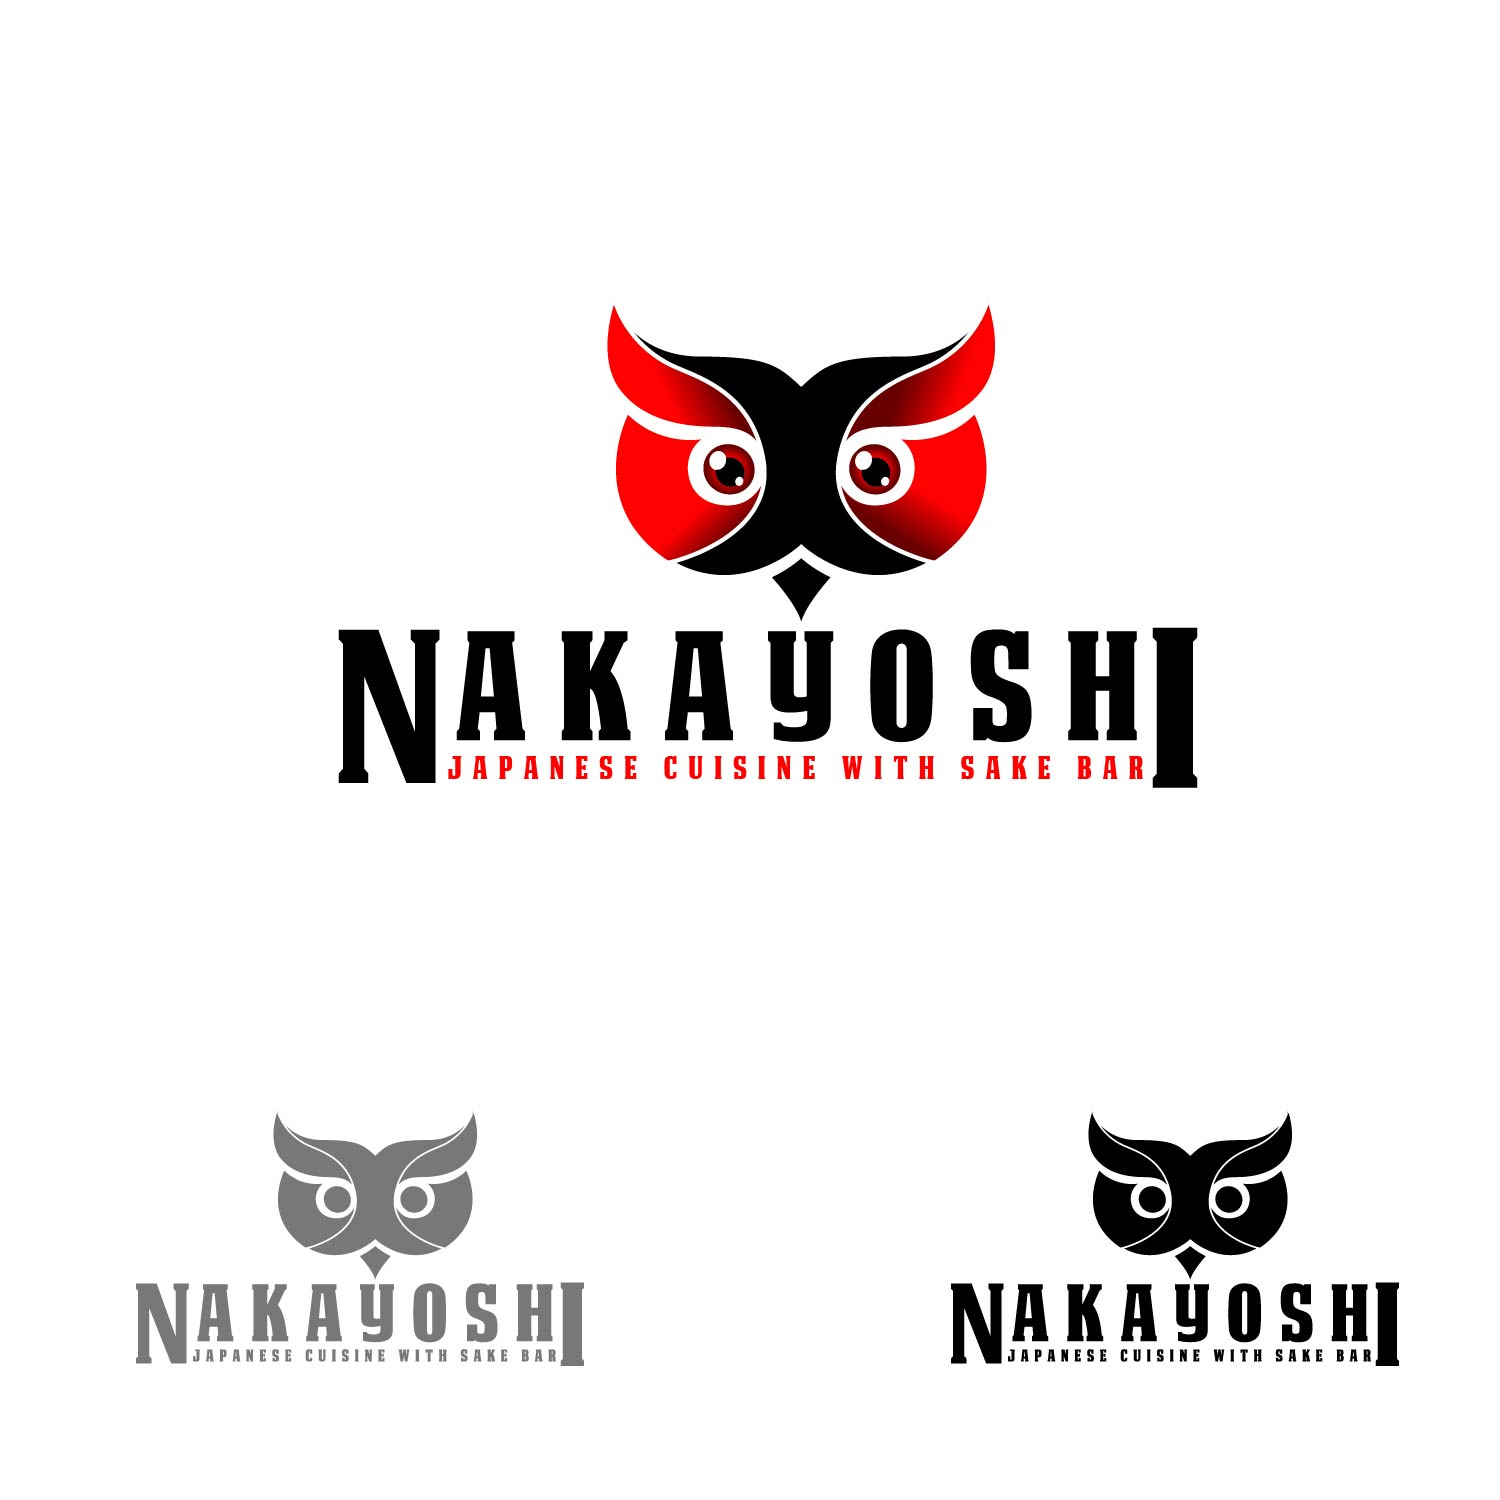 Logo Design by lagalag - Entry No. 43 in the Logo Design Contest Imaginative Logo Design for NAKAYOSHI.